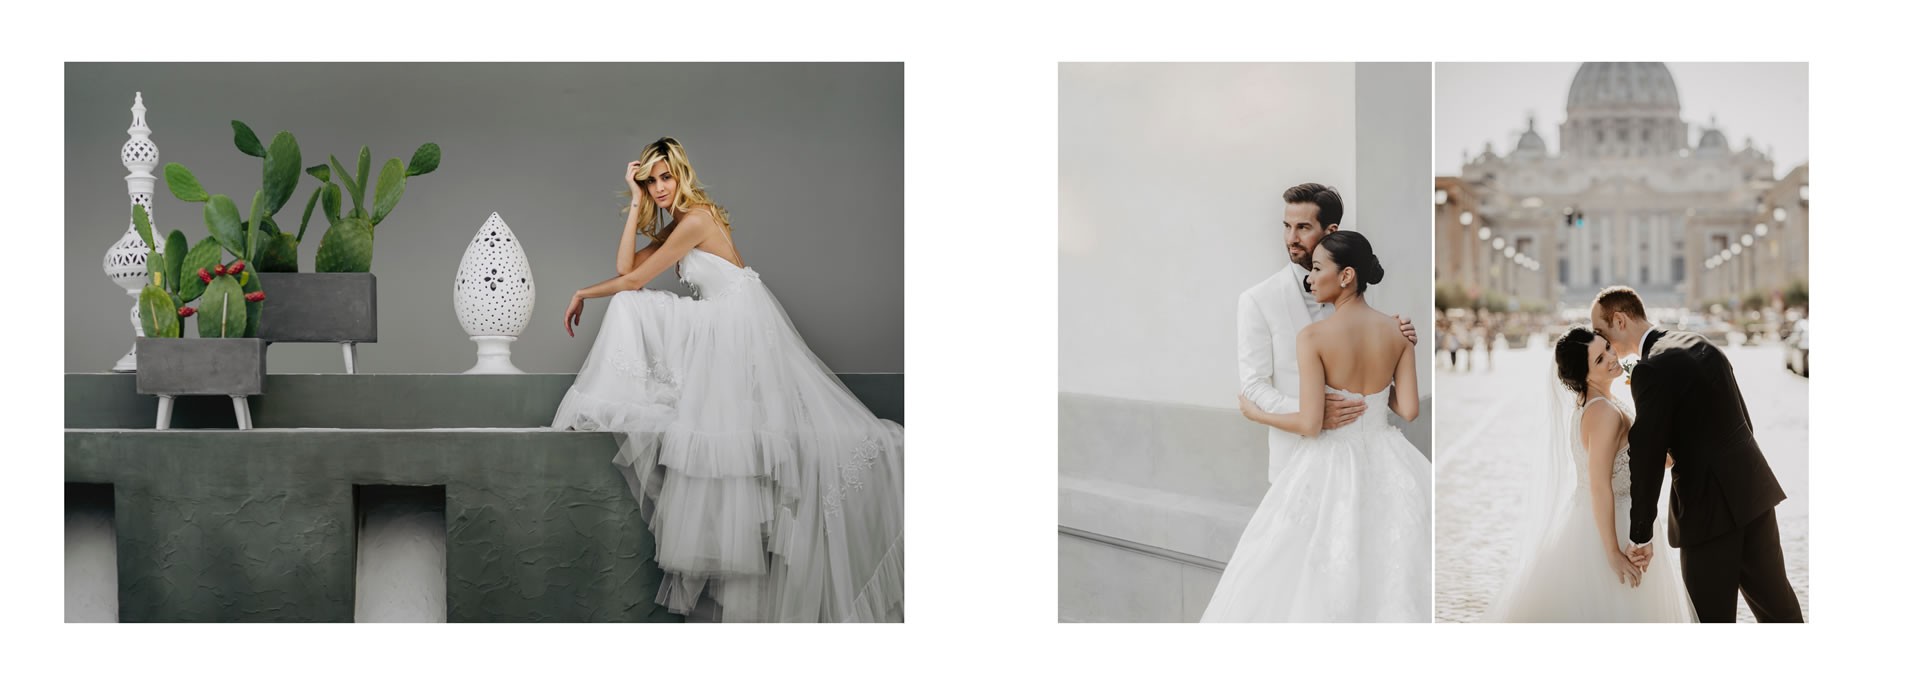 - 32 :: BEST OF 2018 WEDDING: A COLLECTION TO TELL ONE YEAR STORY :: Luxury wedding photography - 31 ::  - 32